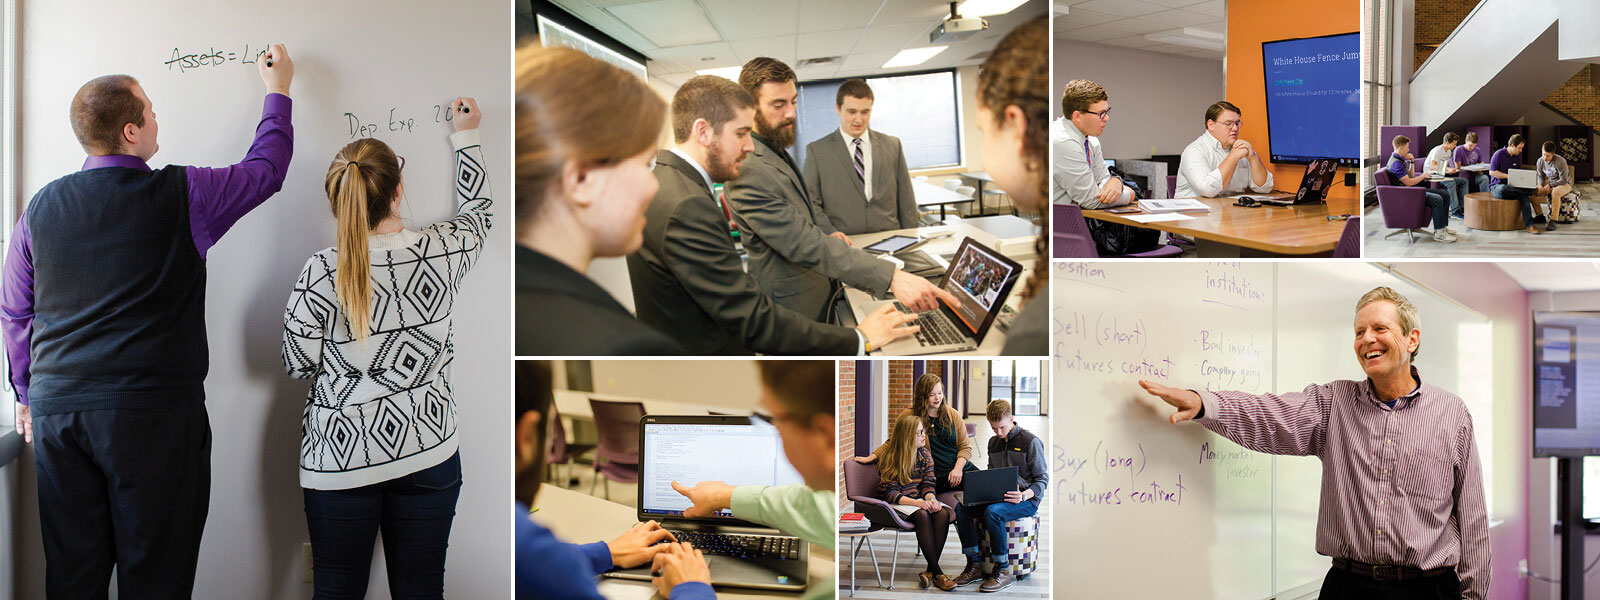 collage of photos showing accounting, business and computer science students